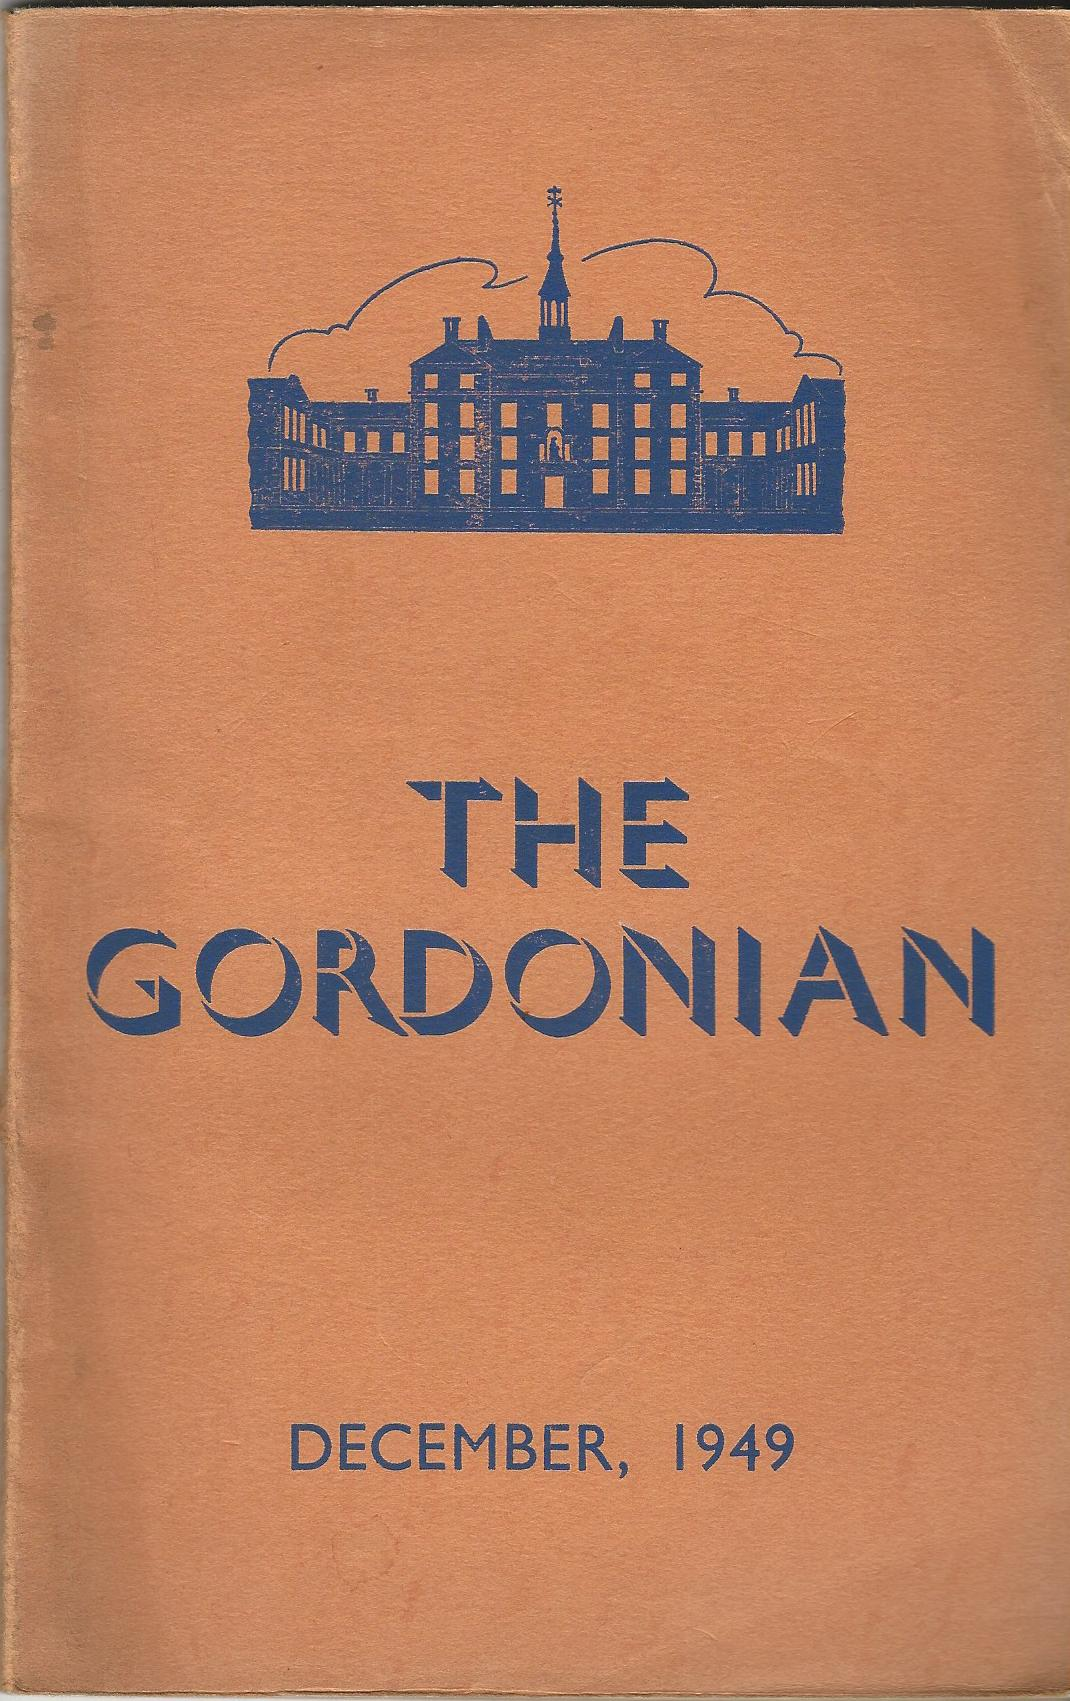 Image for The Gordonian Vol. 1, No.1 (New Series), December 1949.